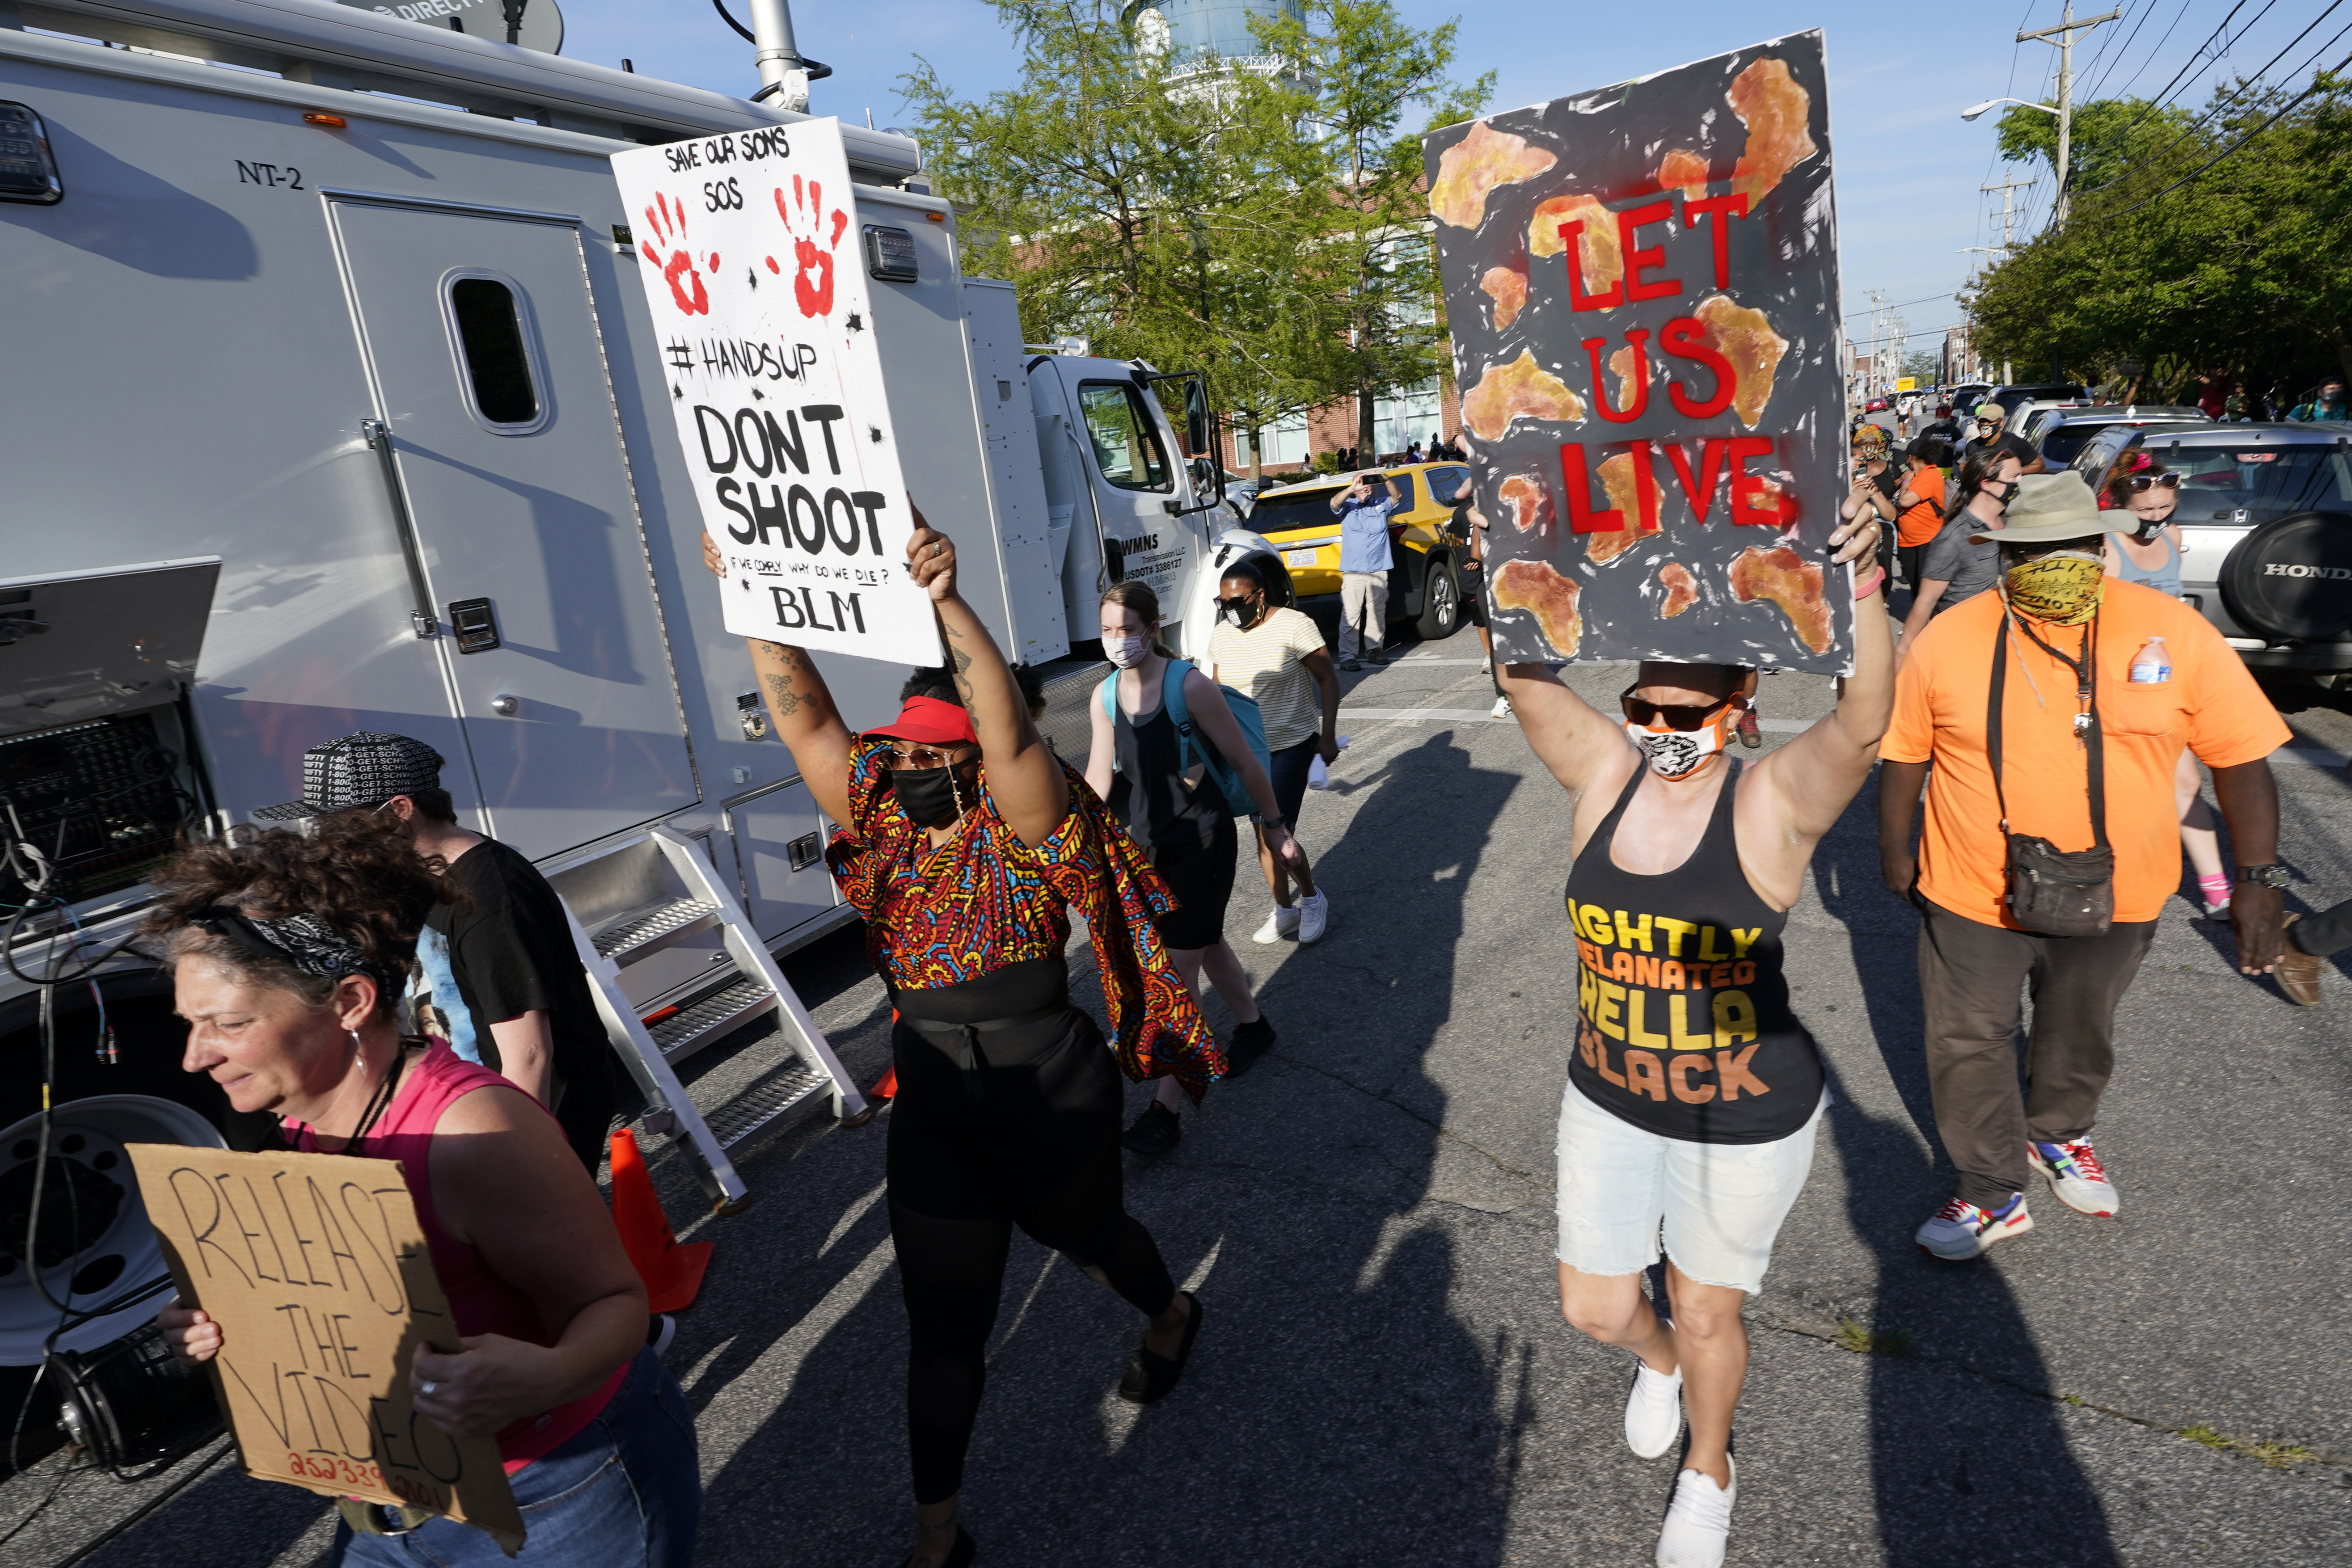 Protesters march along the streets to protest the shooting of Andrew Brown Jr. in Elizabeth City, N.C., Wednesday, April 28, 2021. A judge has denied requests to release body camera video in the case of Brown, a Black man who was killed by North Carolina deputies.